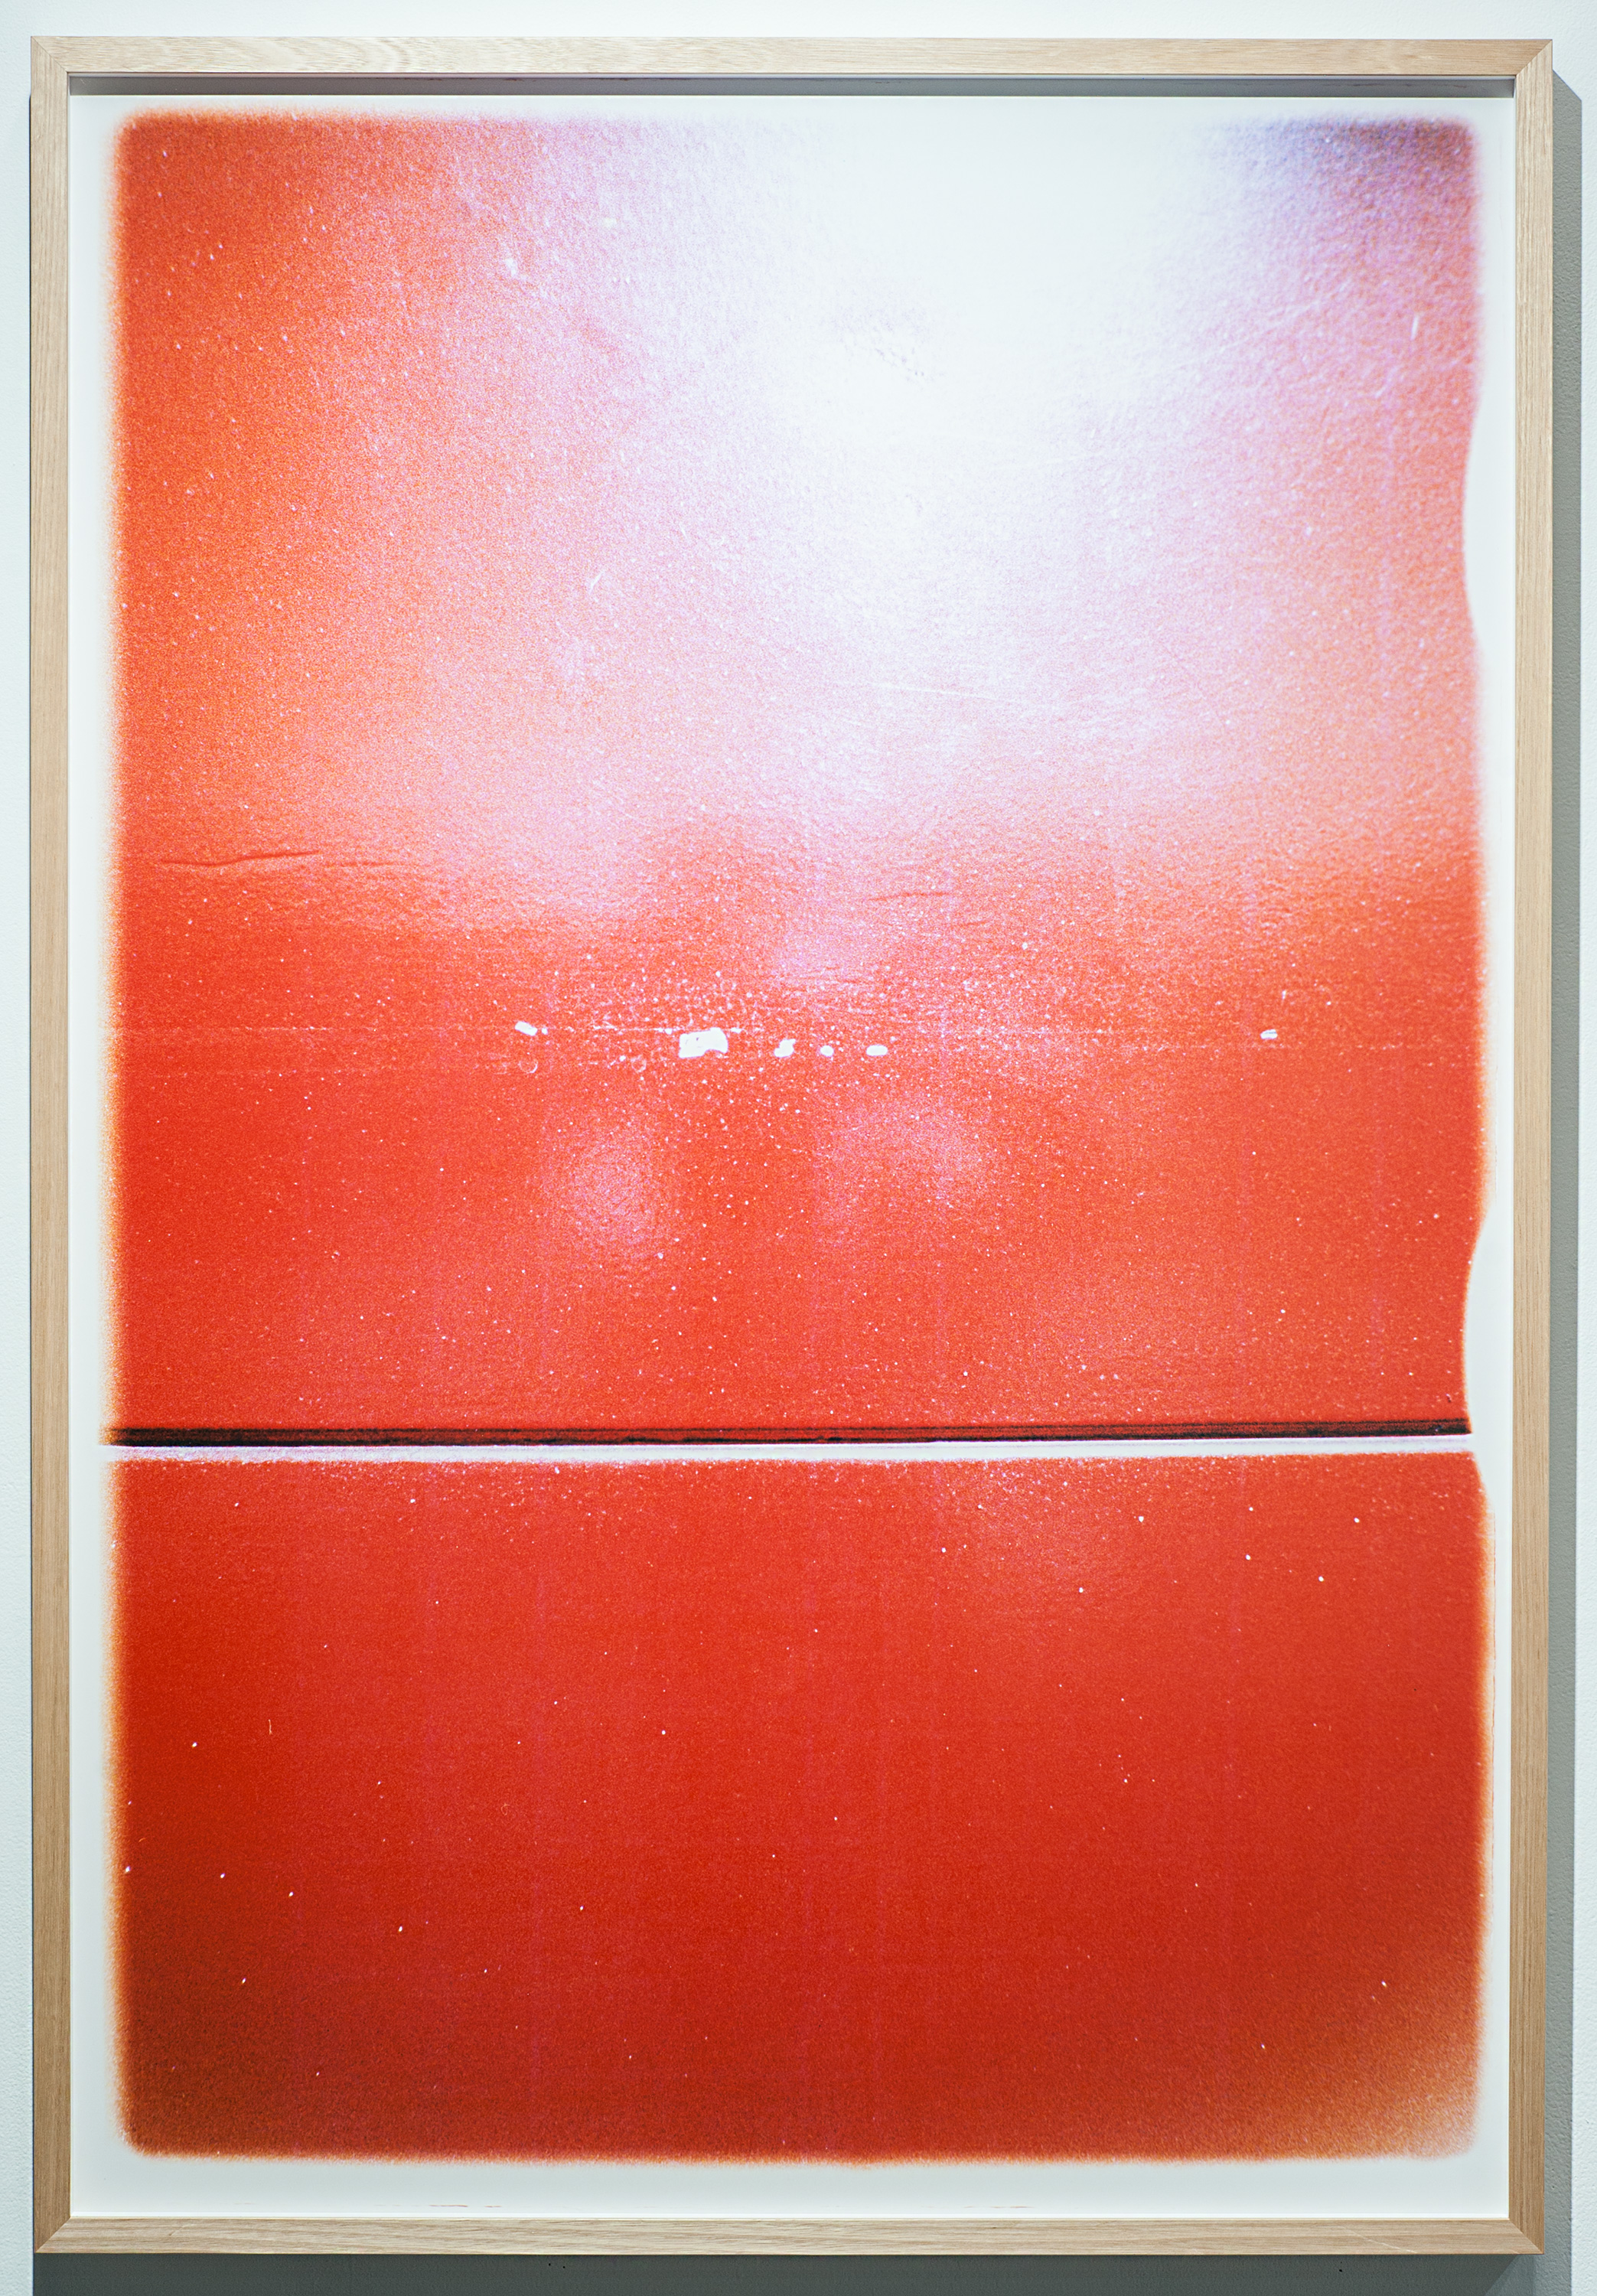 Untitled Red   hand printed c type colour analogue photograph  142 x 99cm  2016